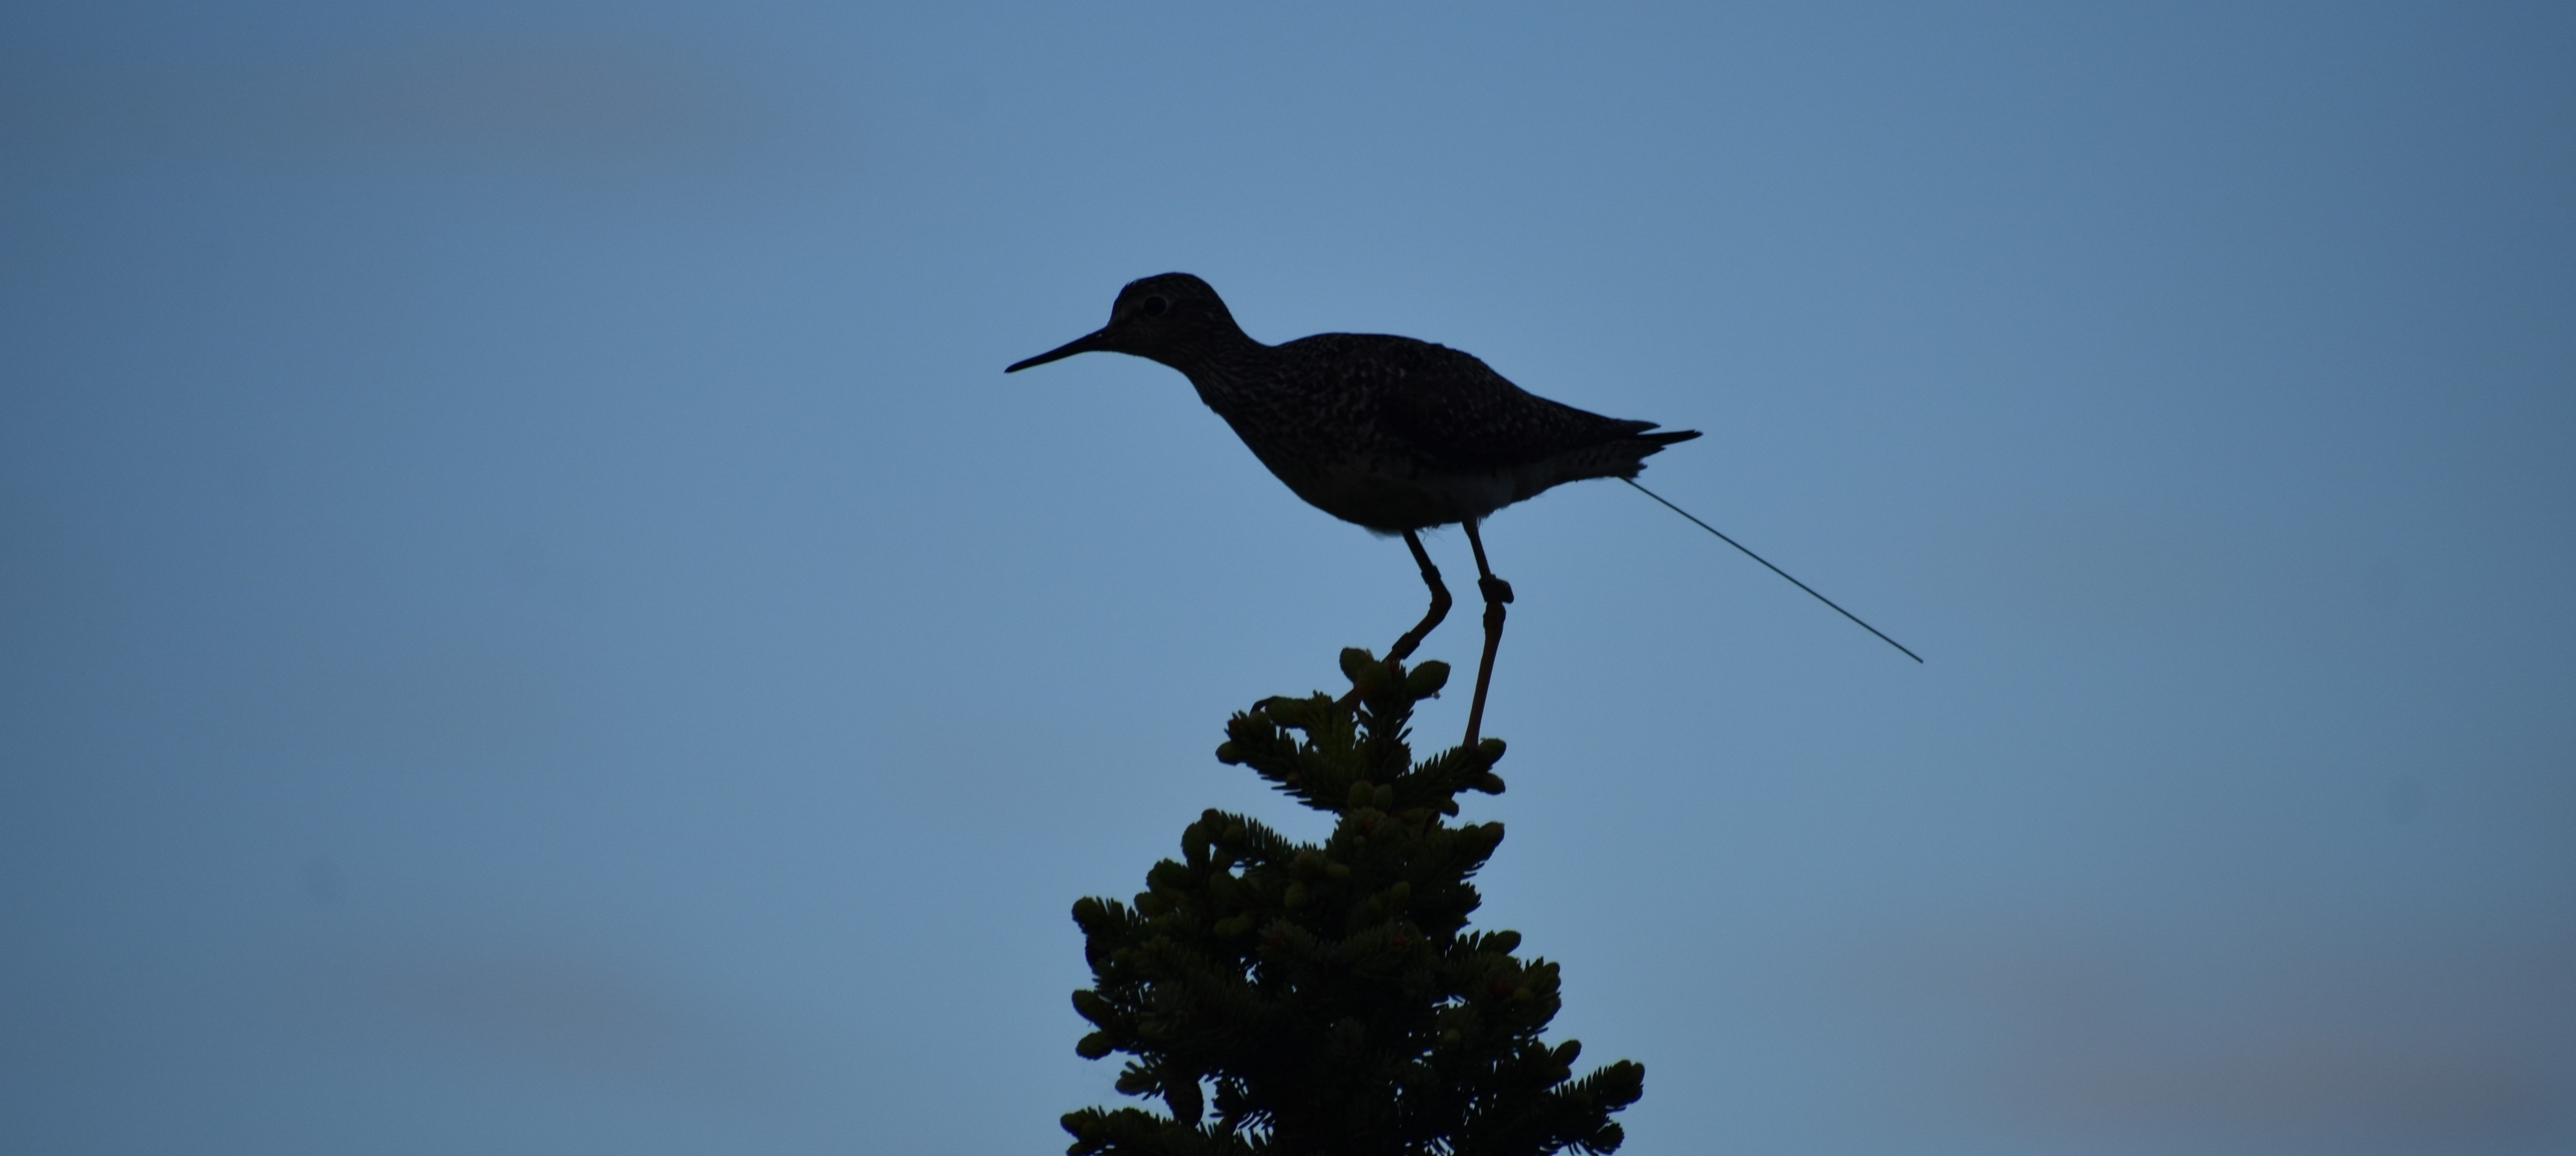 A backlit shorebird with a geolocator tag perches in a spruce tree